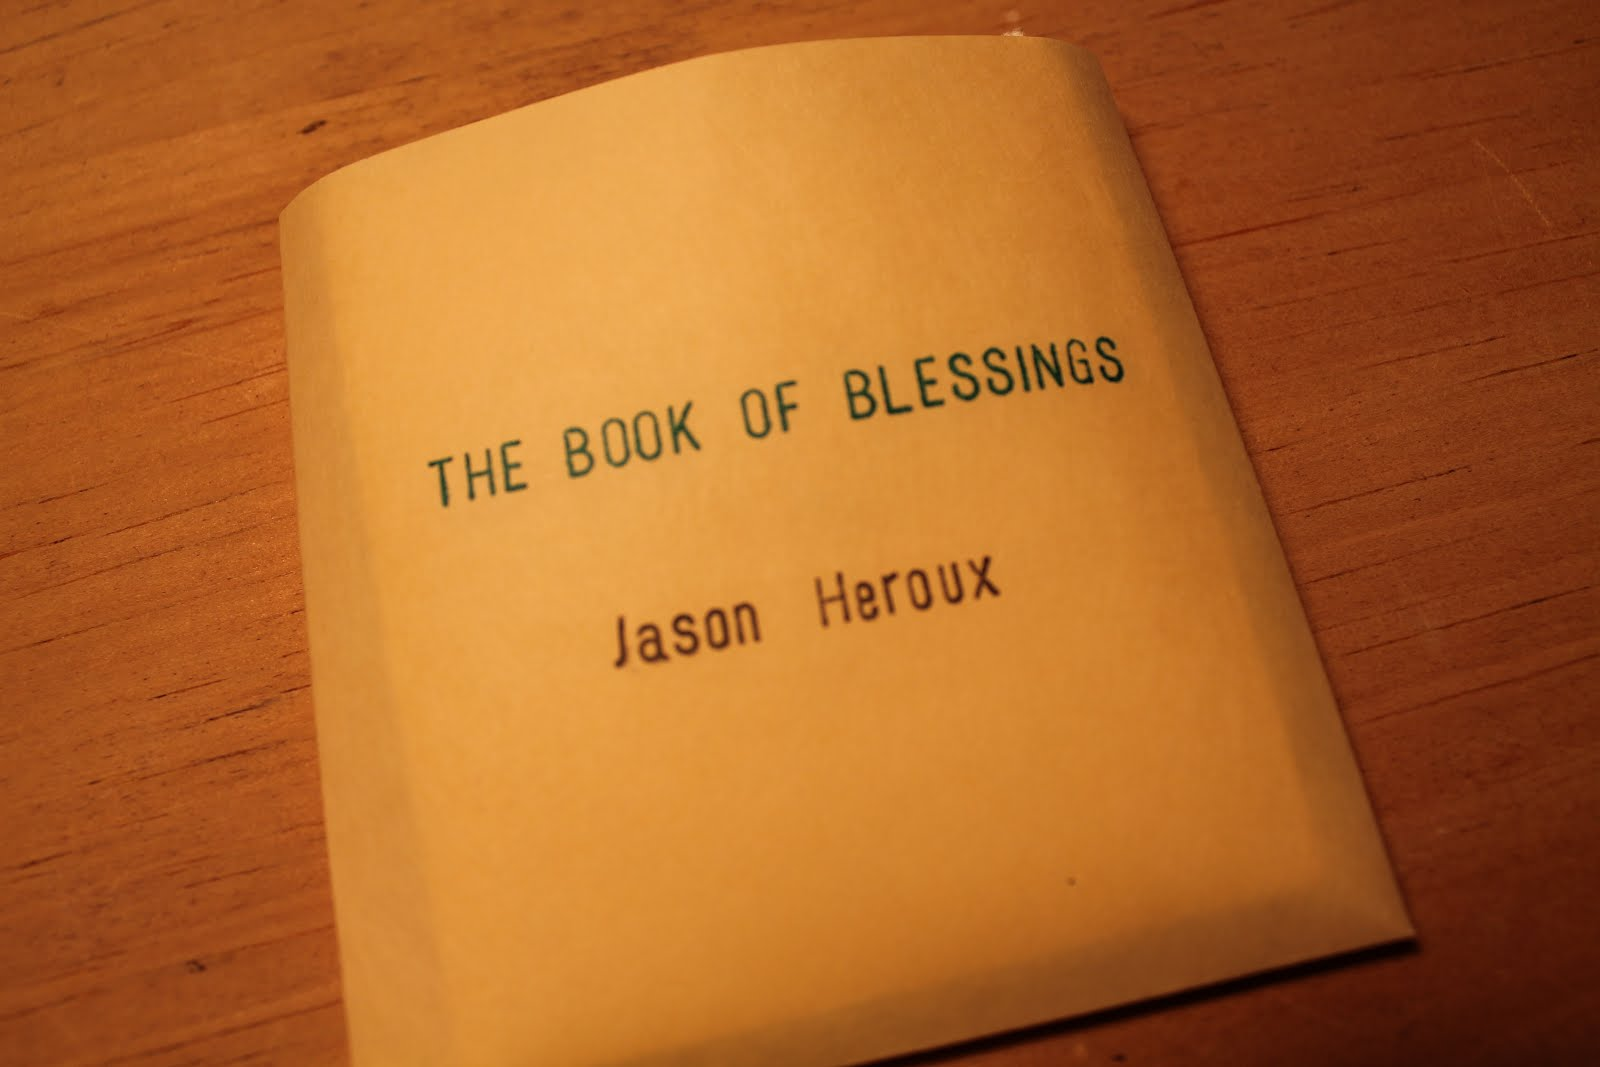 Jason Heroux's Books